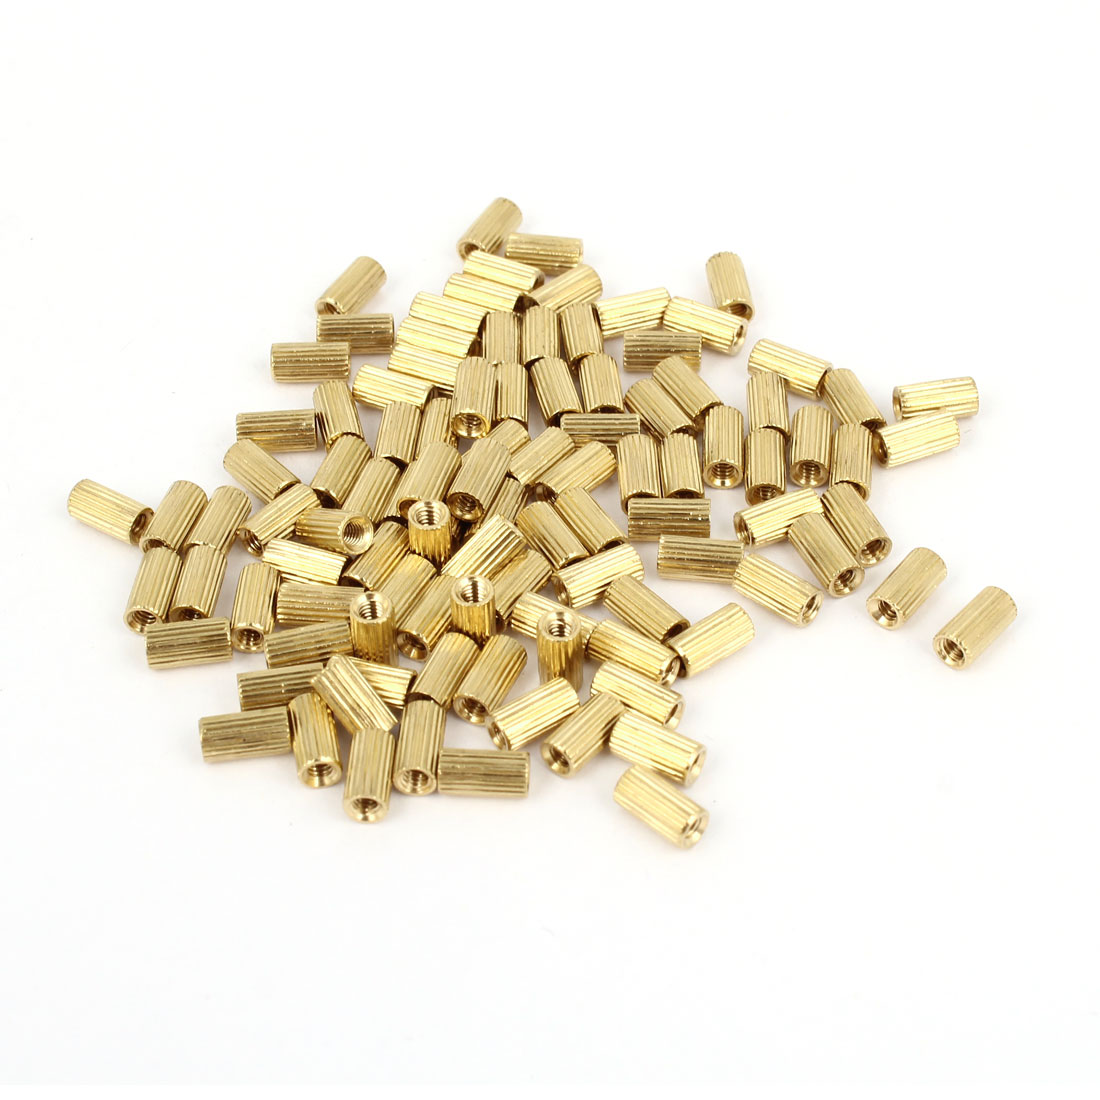 Brass Cylinder Female Threaded Standoff Spacer Pillars Gold Tone M2x6mm 100 Pcs